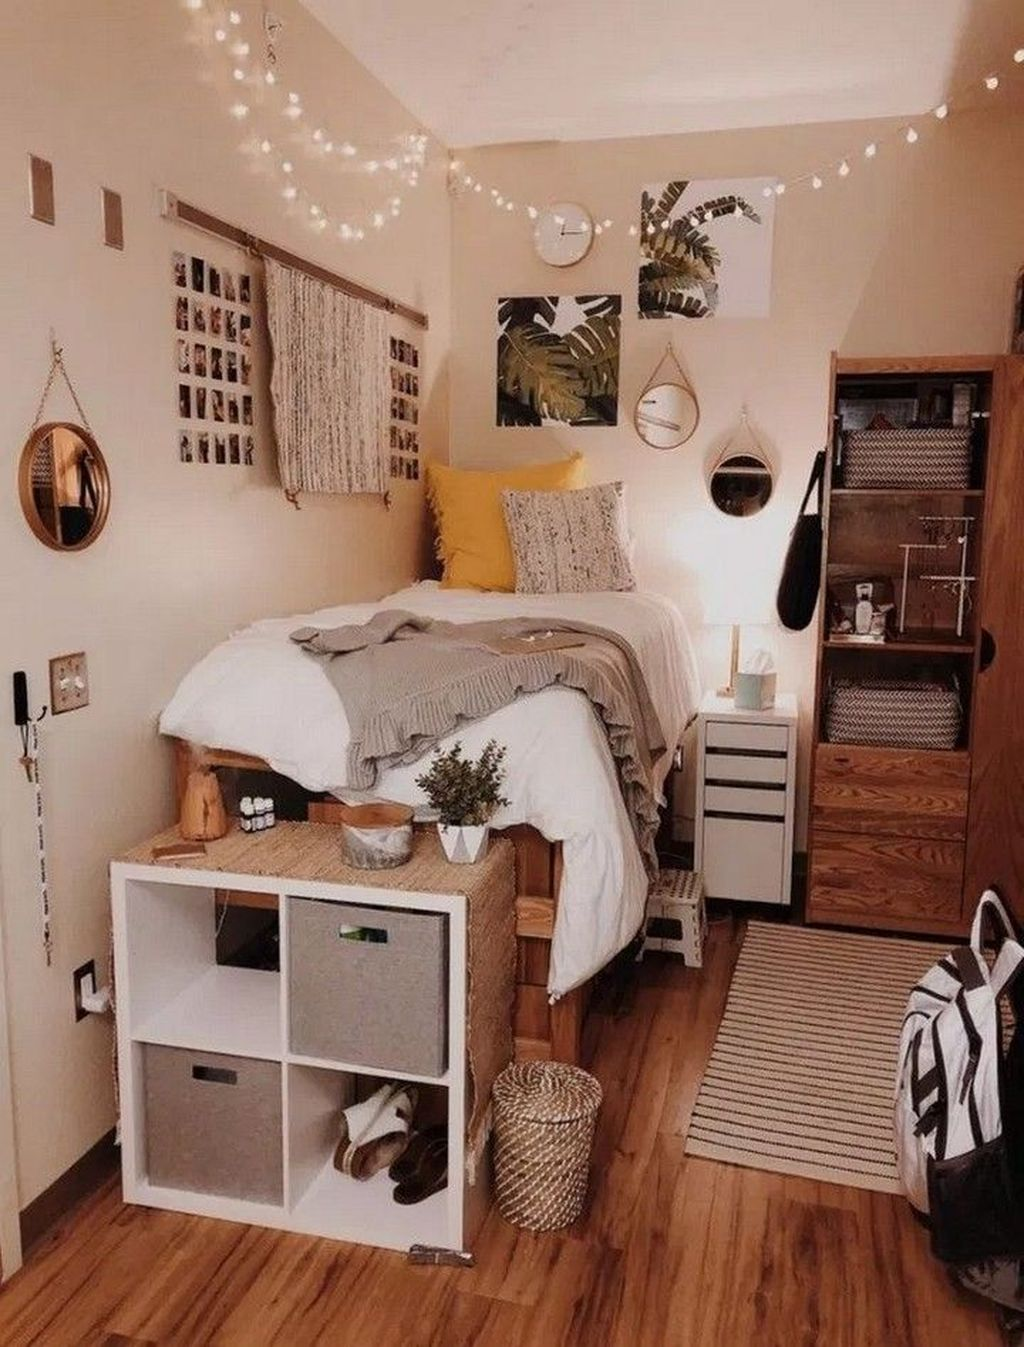 Admirable Small Bedroom Decor Ideas You Never Seen Before 32